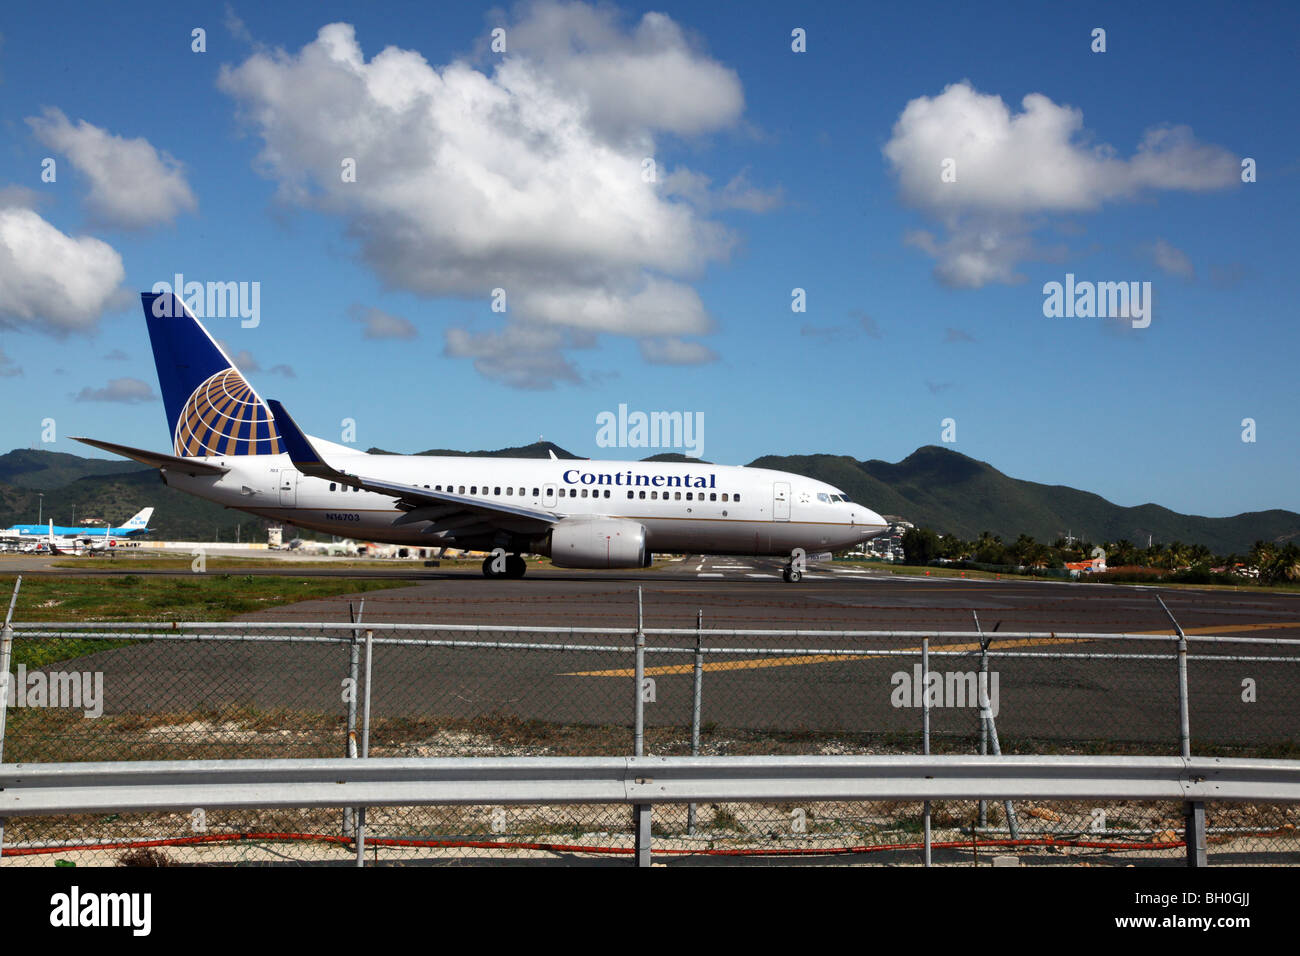 Continental Airlines 737 approaching runway for take-off - Stock Image